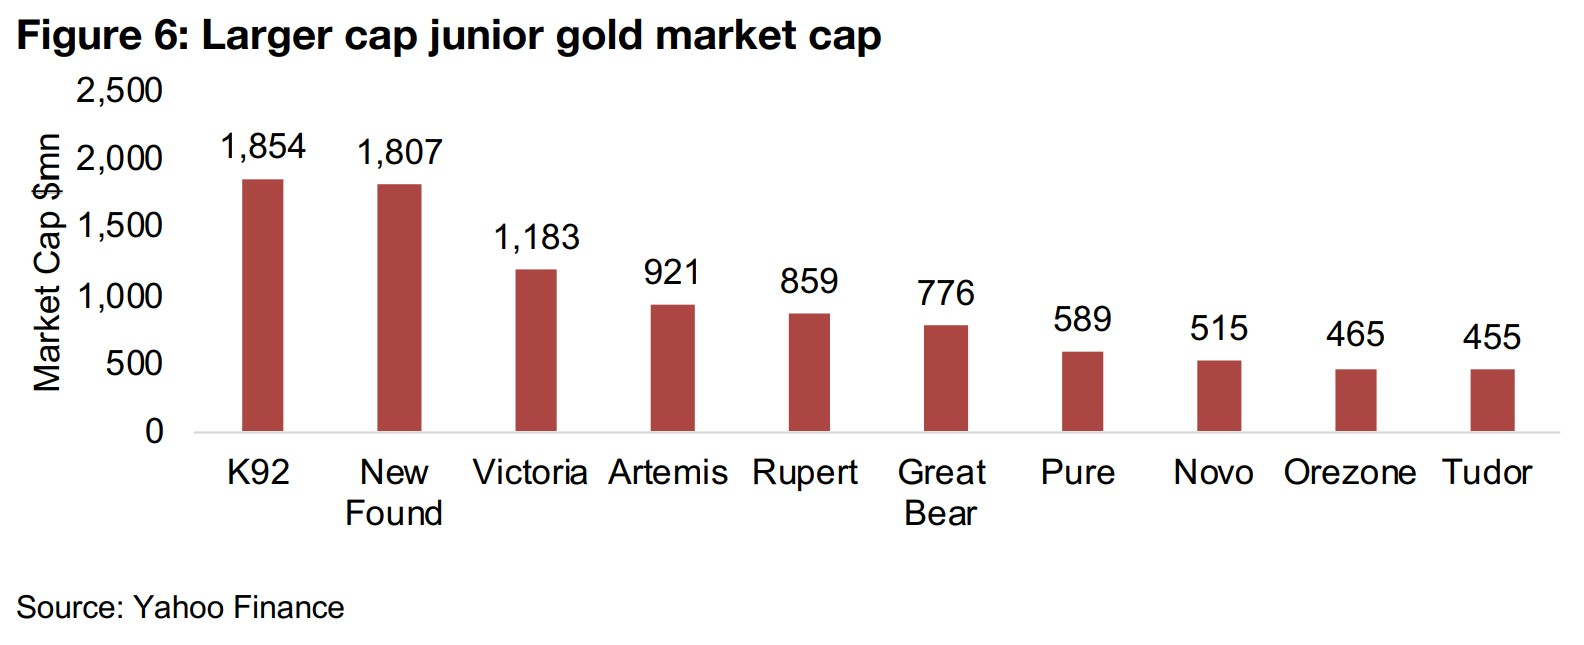 2) A test for the juniors with gold price decline